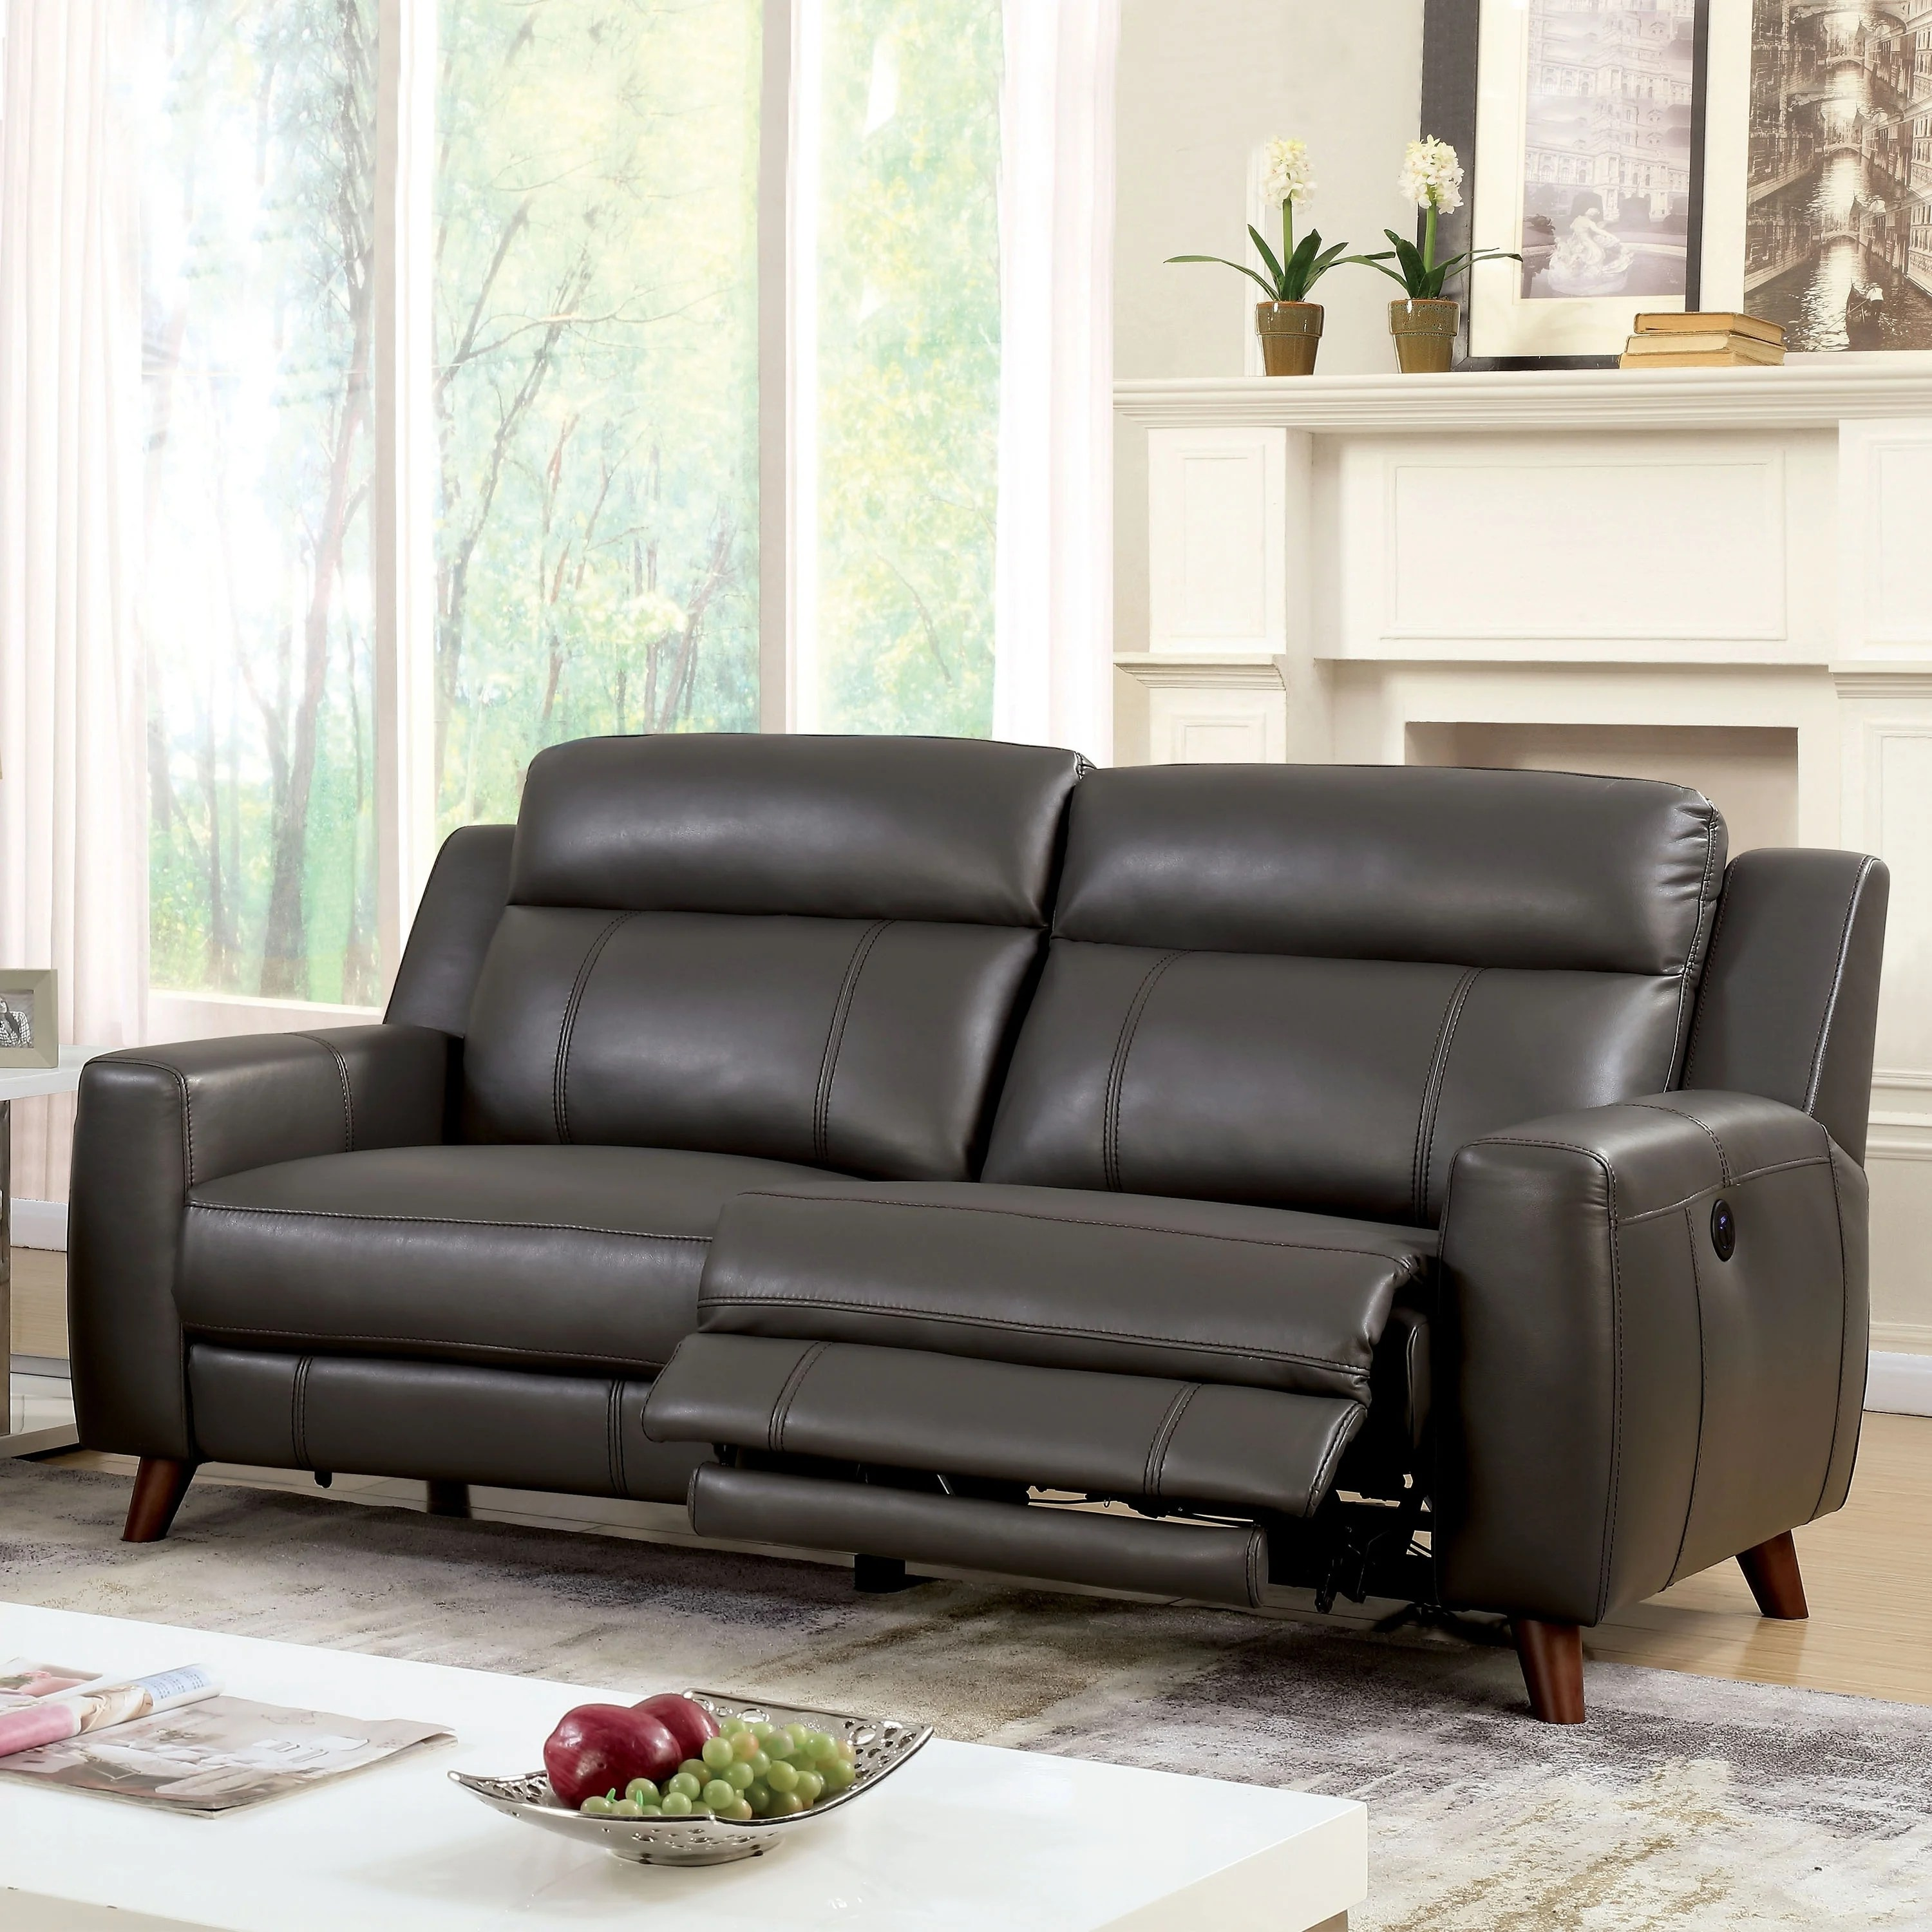 Wohnlandschaft Chenille Buy Furniture Of America Sofas Couches Online At Overstock Our